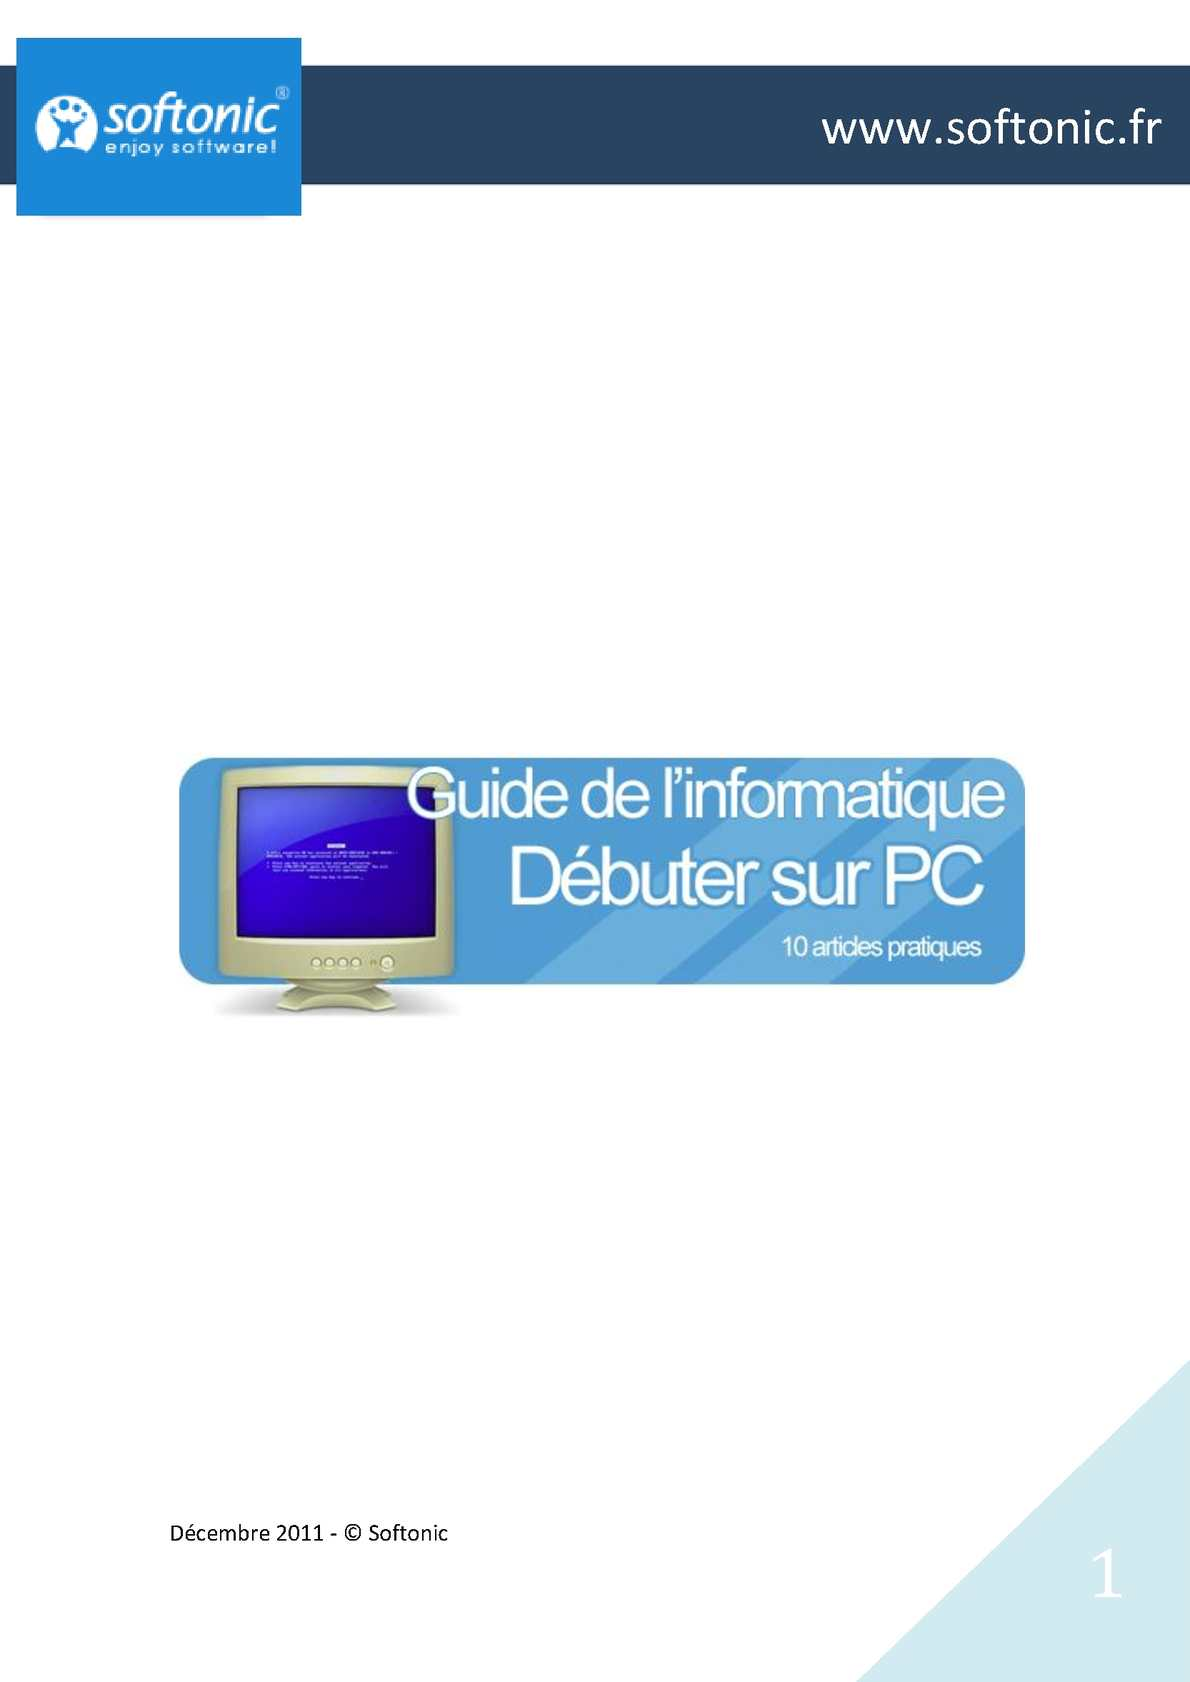 Le guide de l'informatique